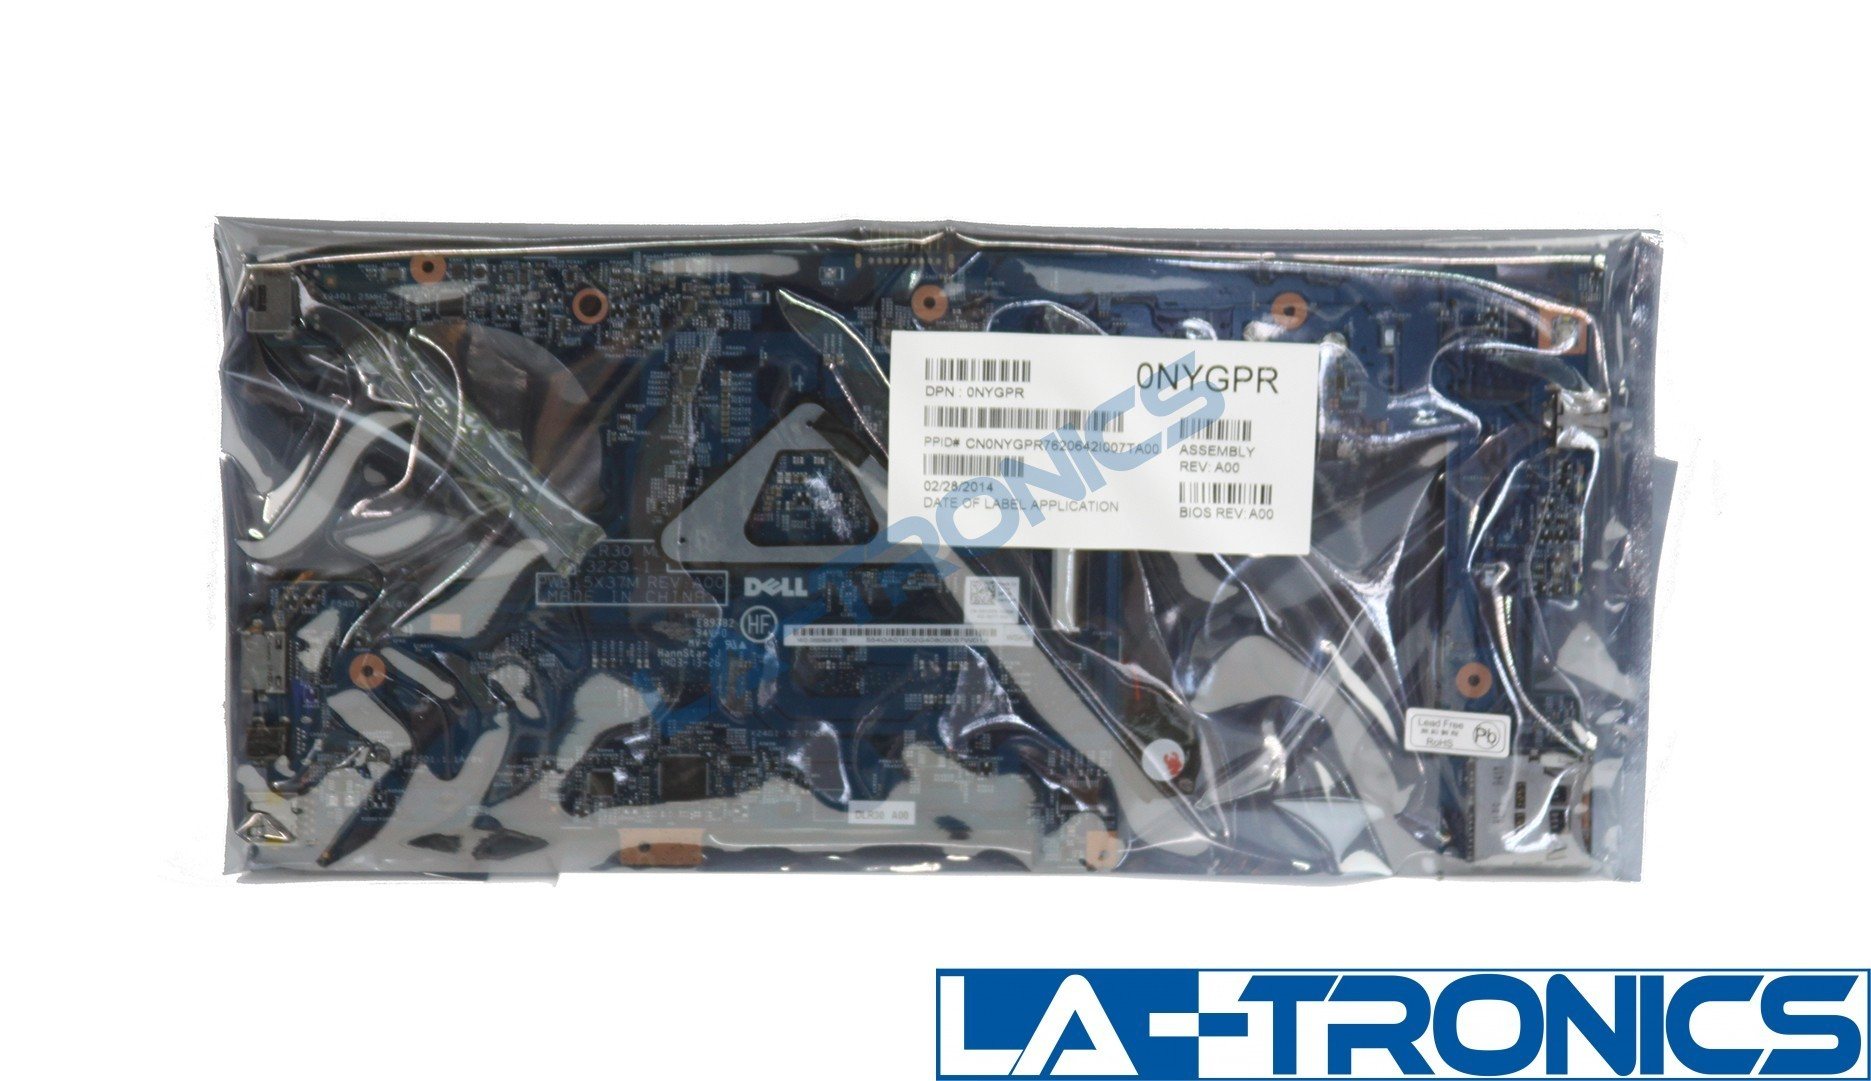 NEW Dell Latitude 3340 Laptop Motherboard i3-4010U 1.7GHz NYGPR 0NYGPR